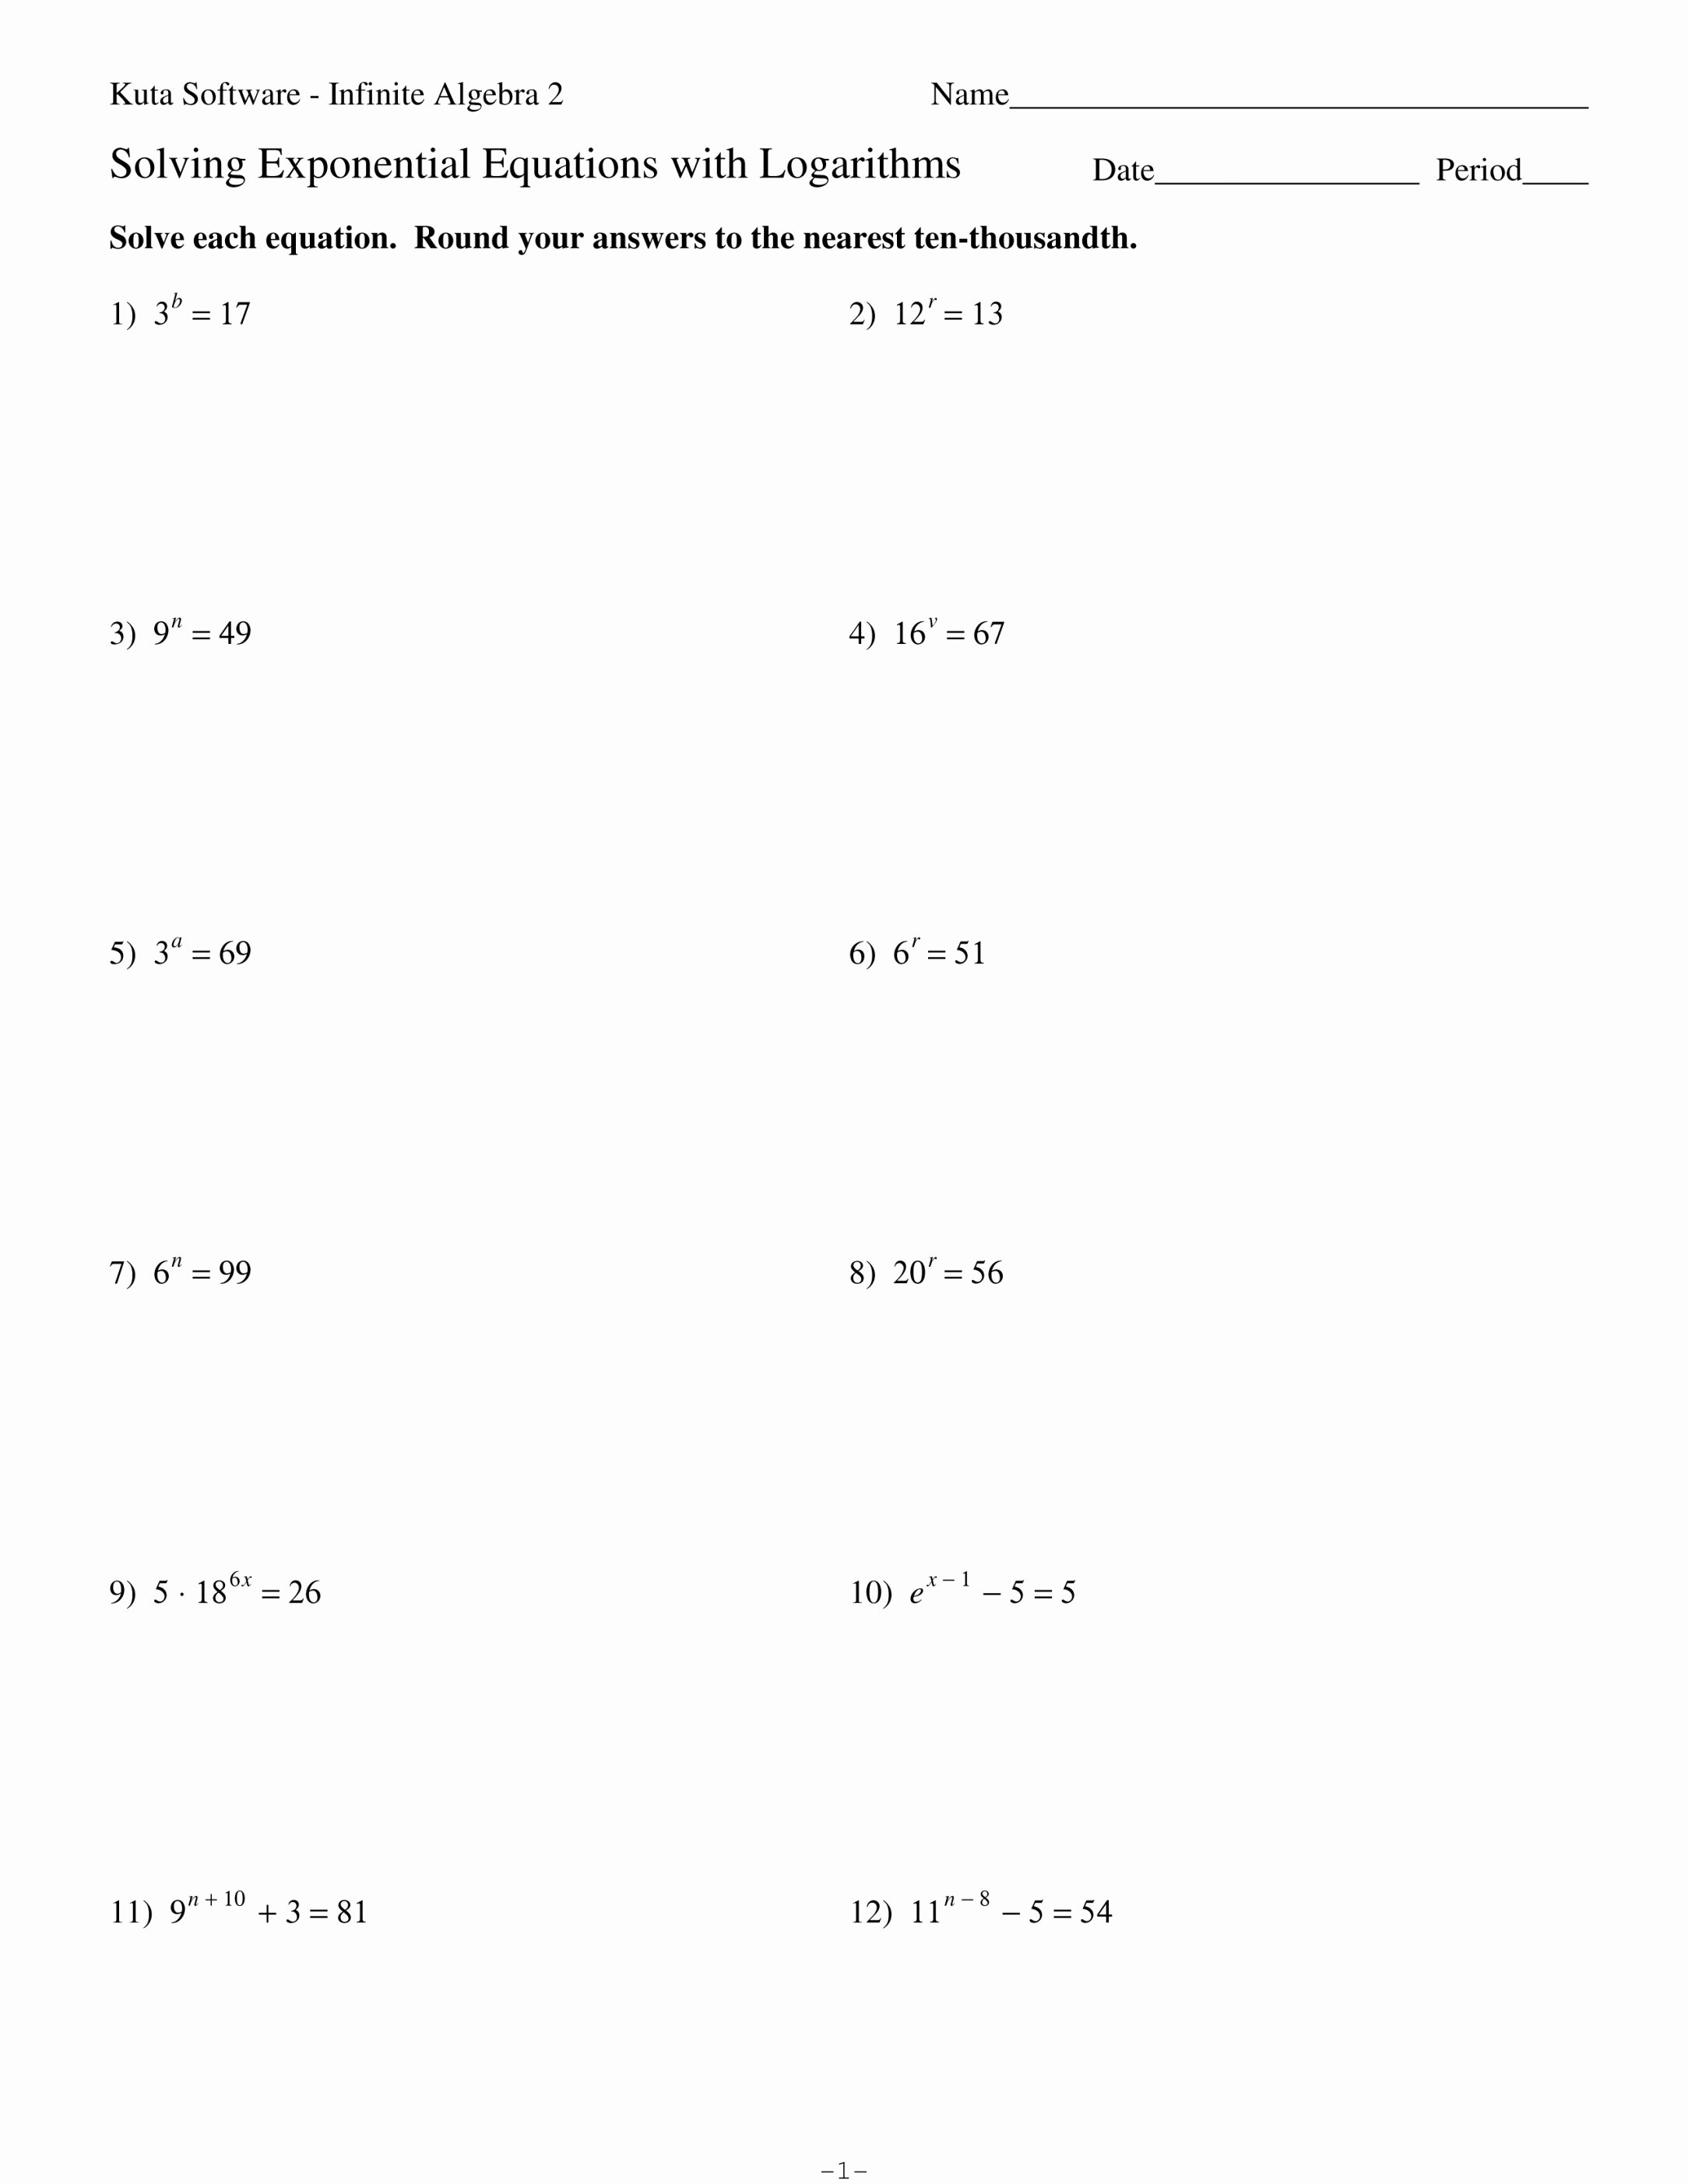 Solving Equations Review Worksheet Lovely solving Exponential Equations Answer Key Tessshebaylo